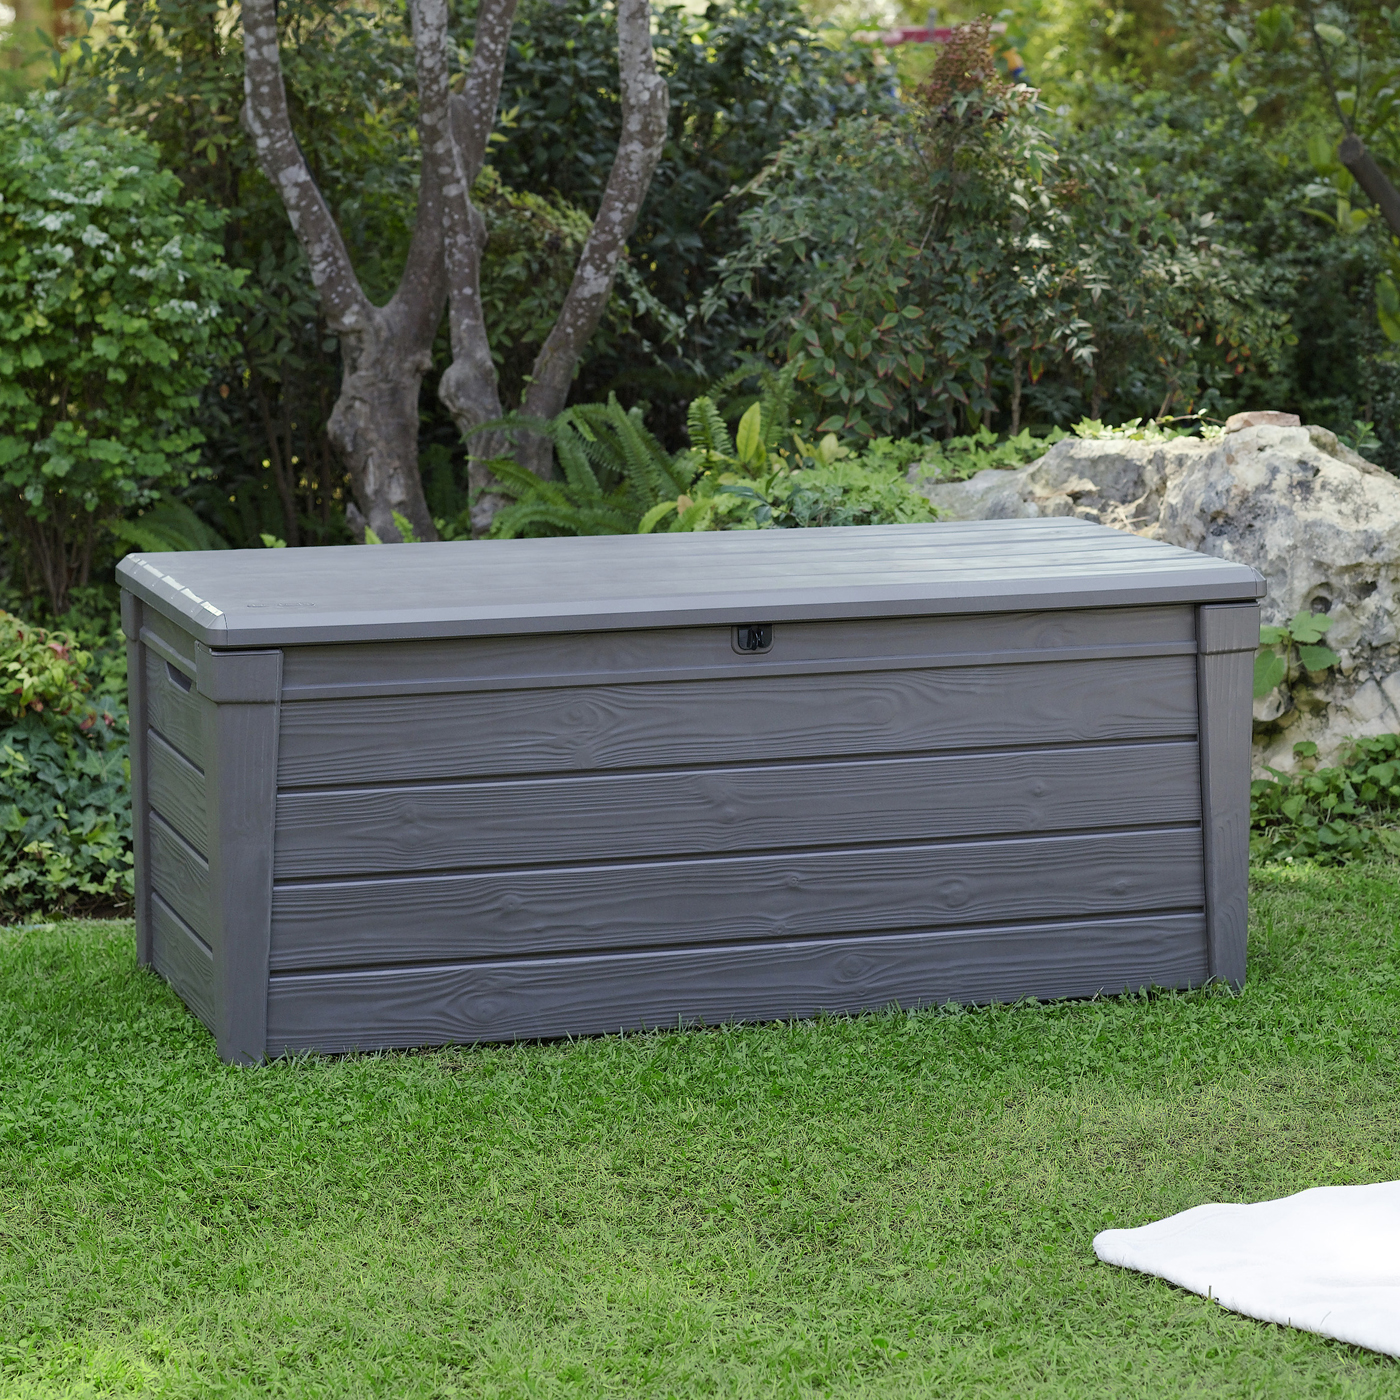 Keter 150 Gallon Deck Box | Extra Large Deck Box 150 Gallon | Outdoor Plastic Storage Containers